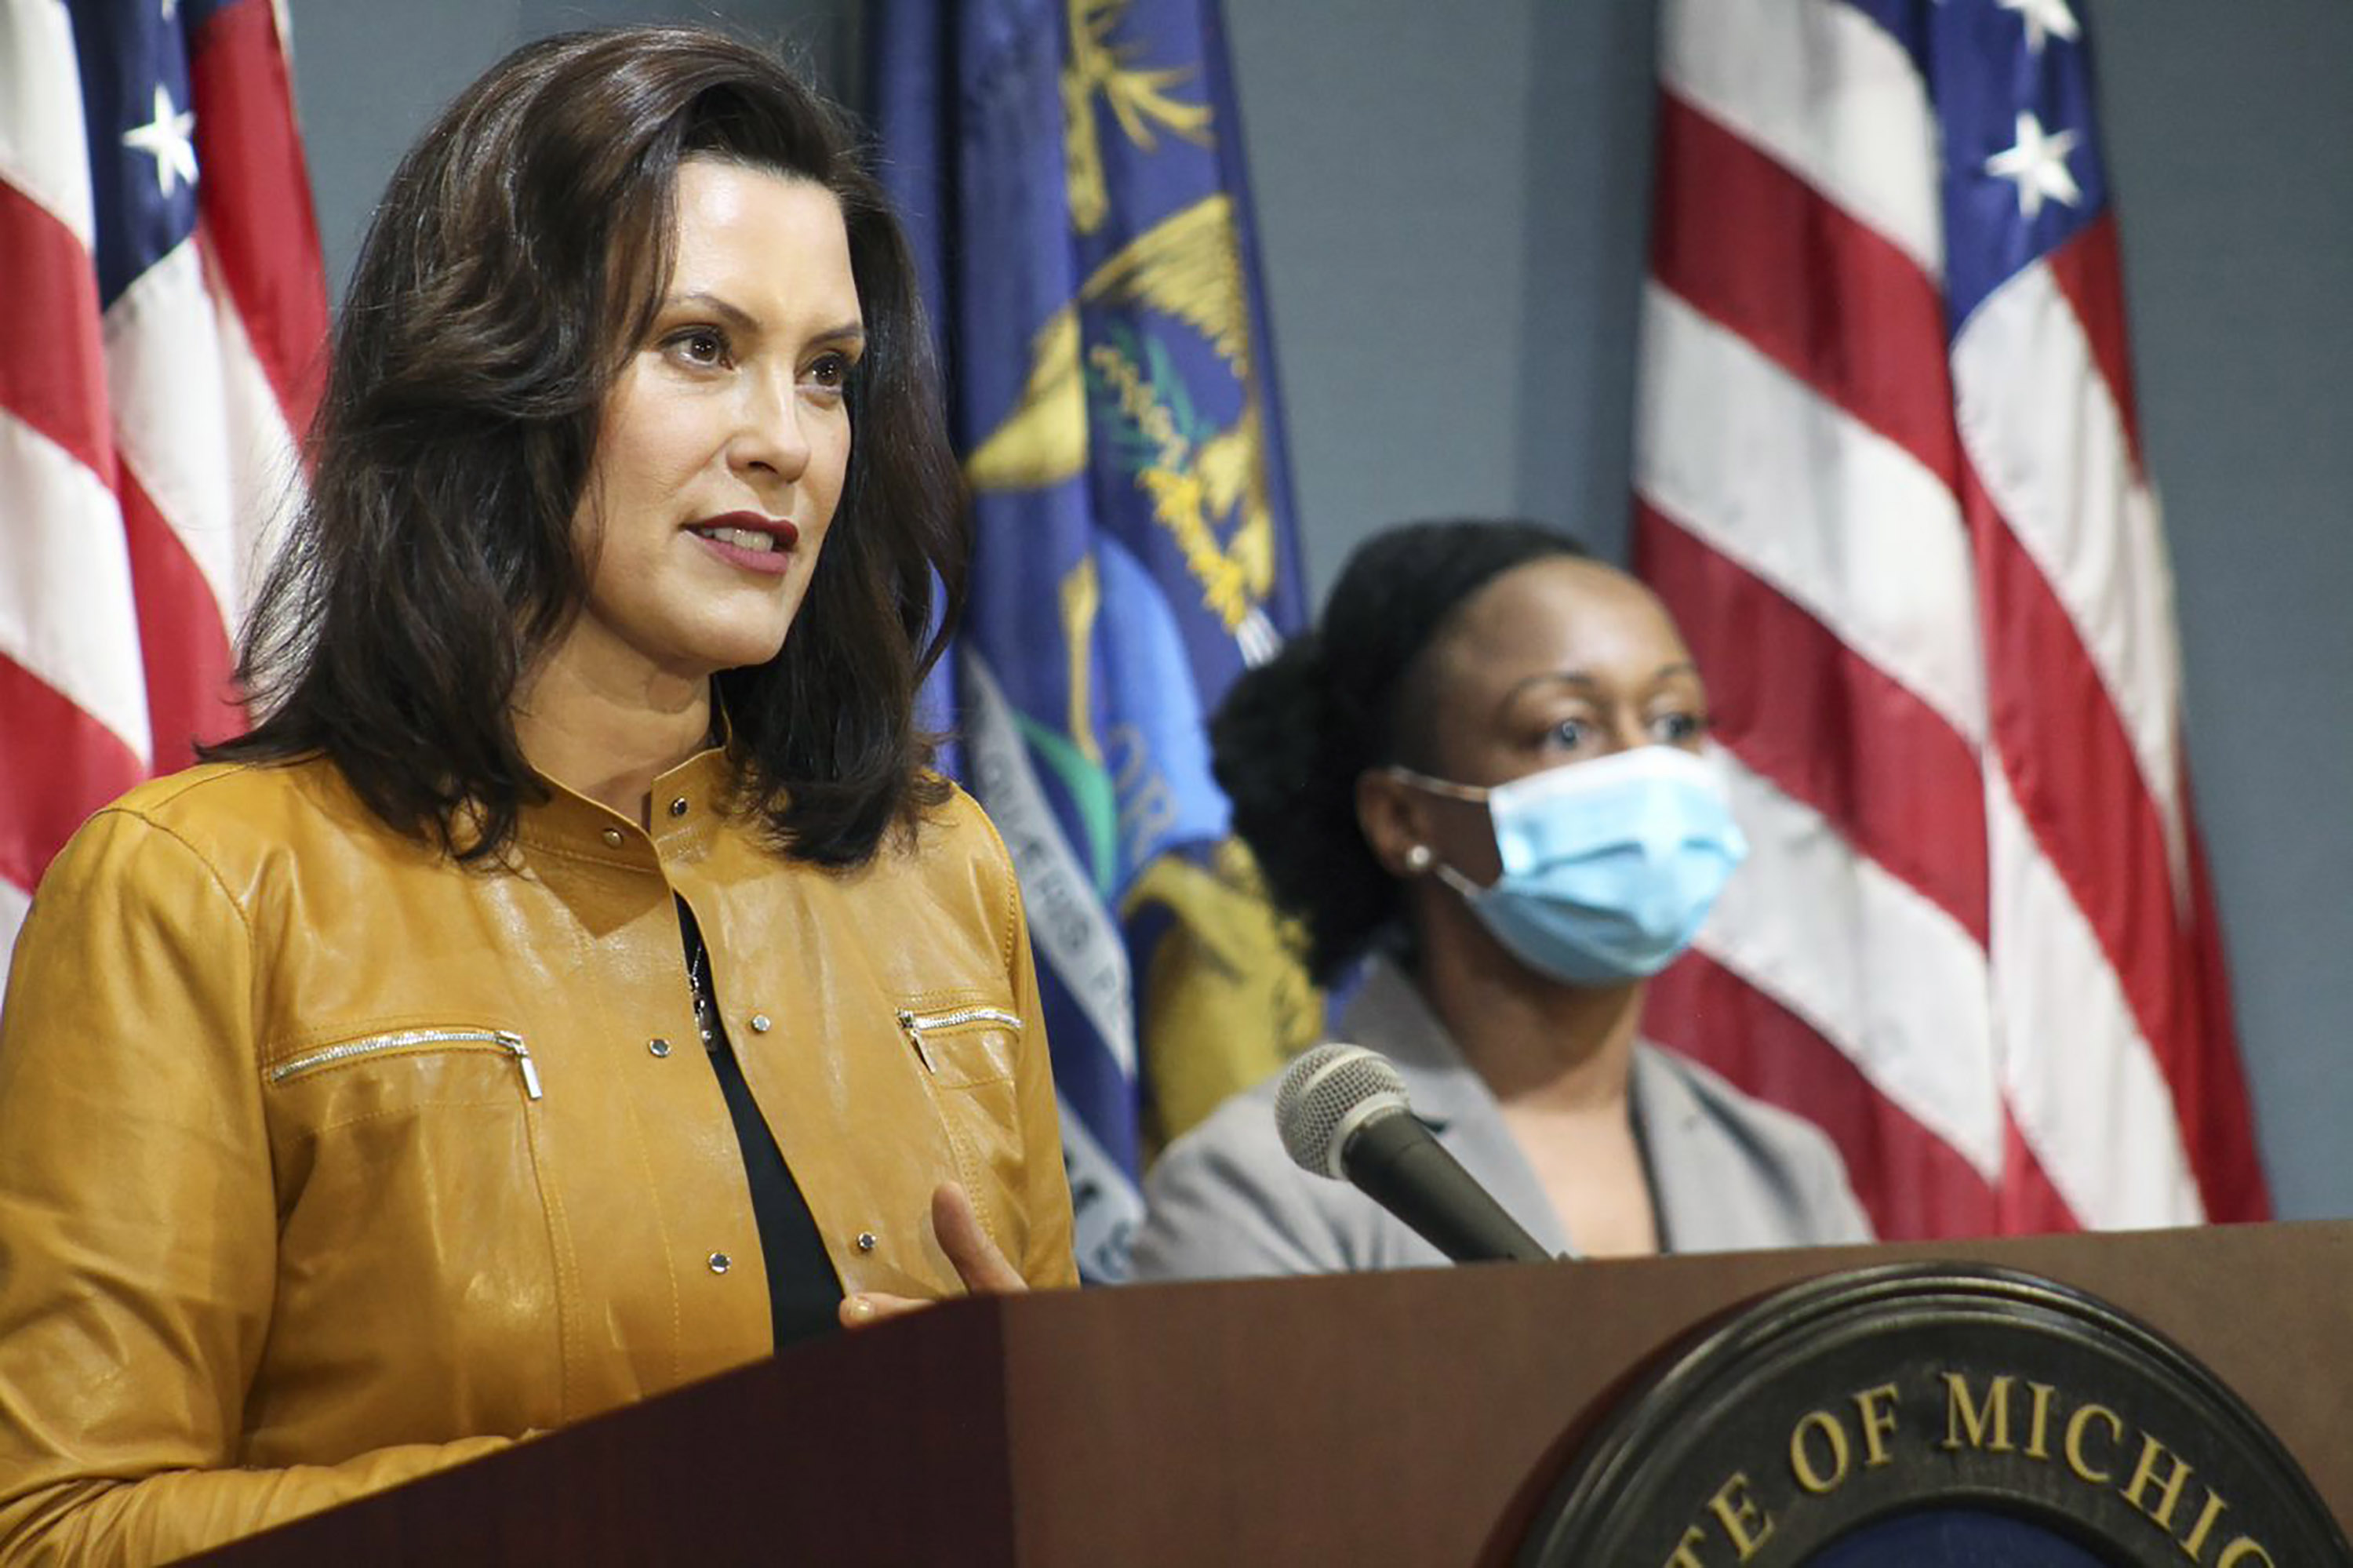 Whitmer faces backlash over husband's 'failed attempt at humor' about their boat